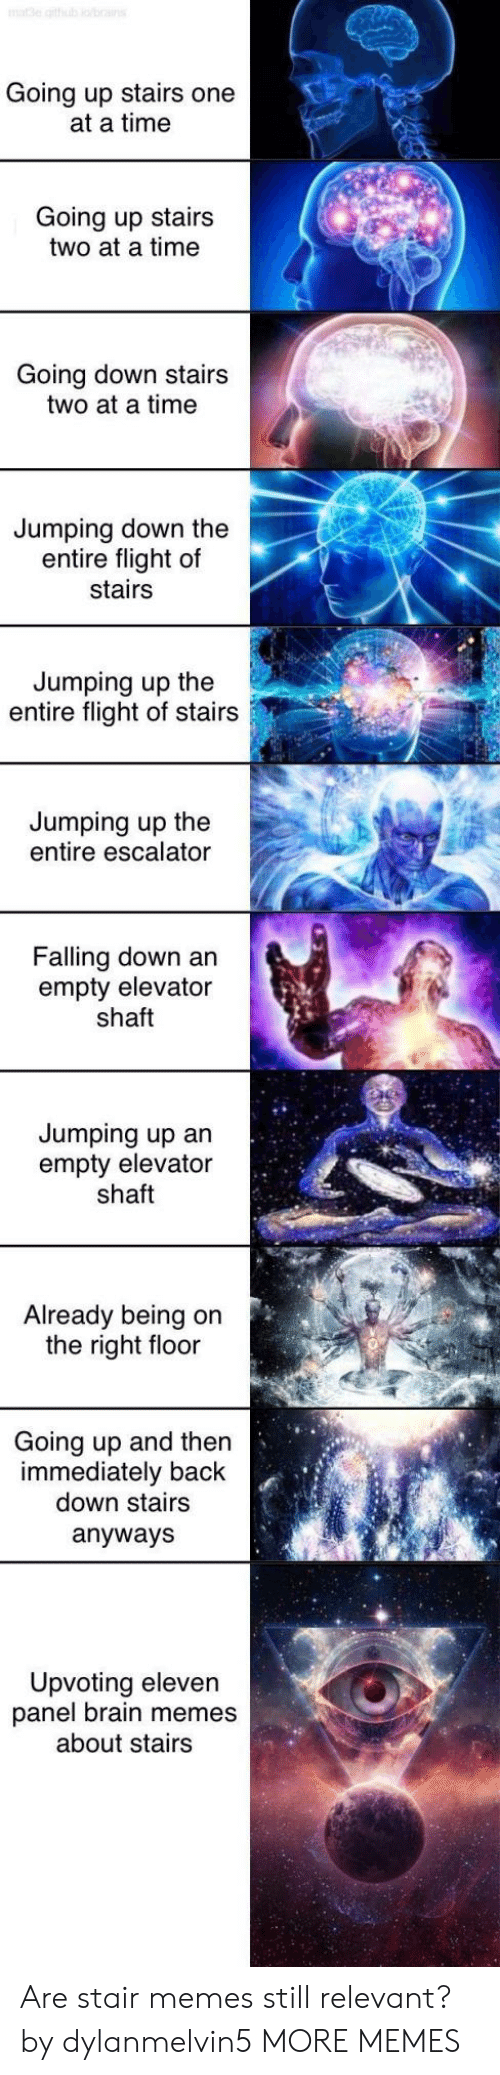 jumping up: Going up stairs one  at a time  Going up stairs  two at a time  Going down stairs  two at a time  Jumping down the  entire flight of  stairs  Jumping up the  entire flight of stairs  Jumping up the  entire escalator  Falling down an  empty elevator  shaft  Jumping up an  empty elevator  shaft  Already being on  the right floor  Going up and then  immediately back  down stairs  anyways  Upvoting eleven  panel brain memes  about stairs Are stair memes still relevant? by dylanmelvin5 MORE MEMES